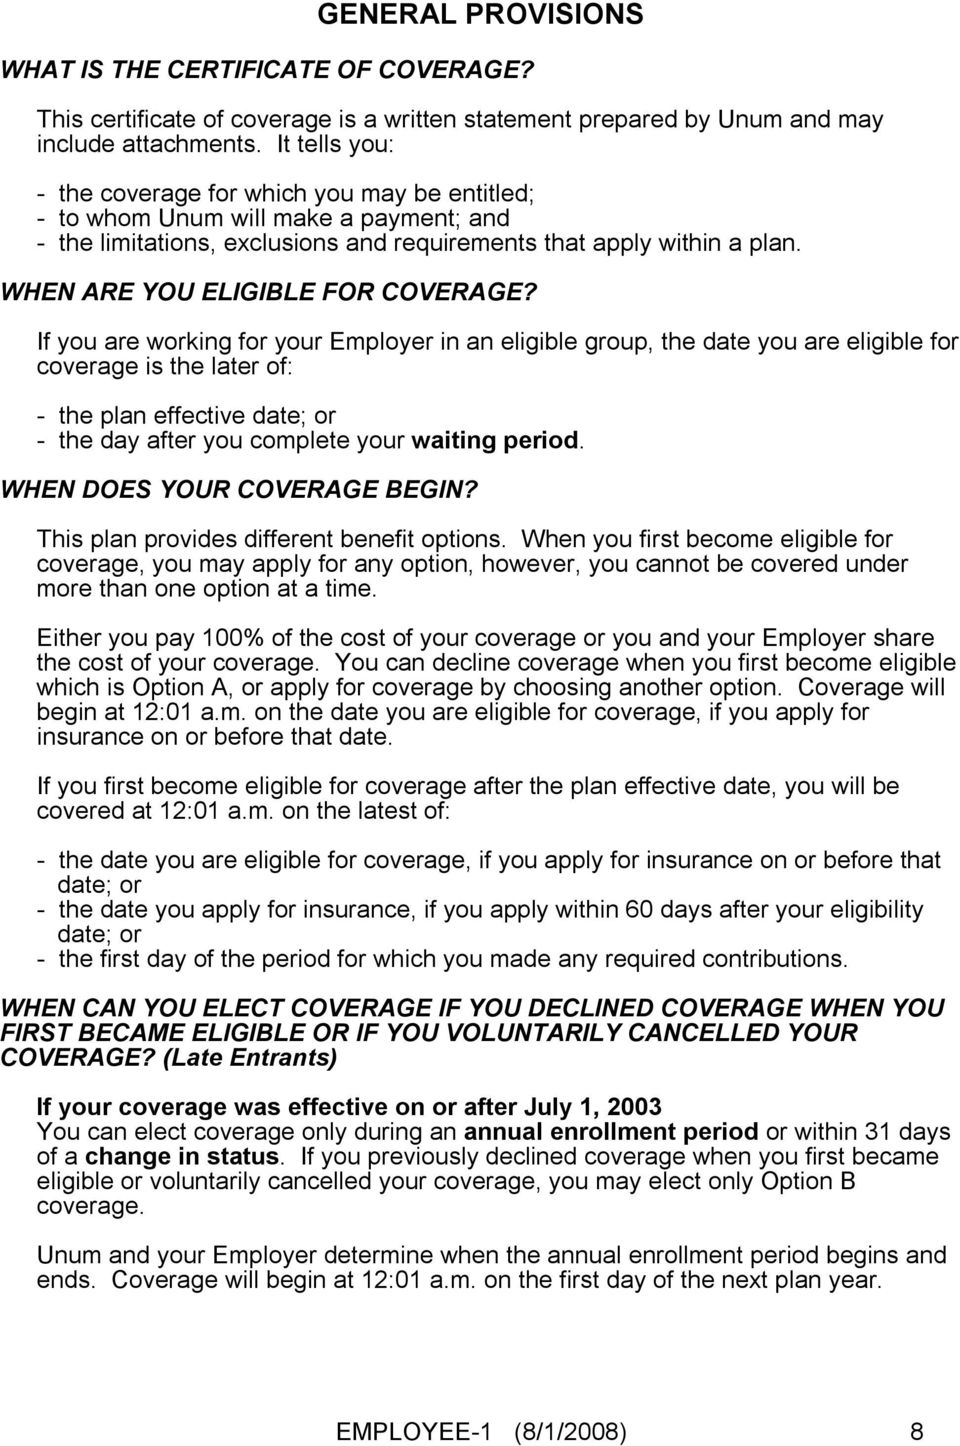 WHEN ARE YOU ELIGIBLE FOR COVERAGE?